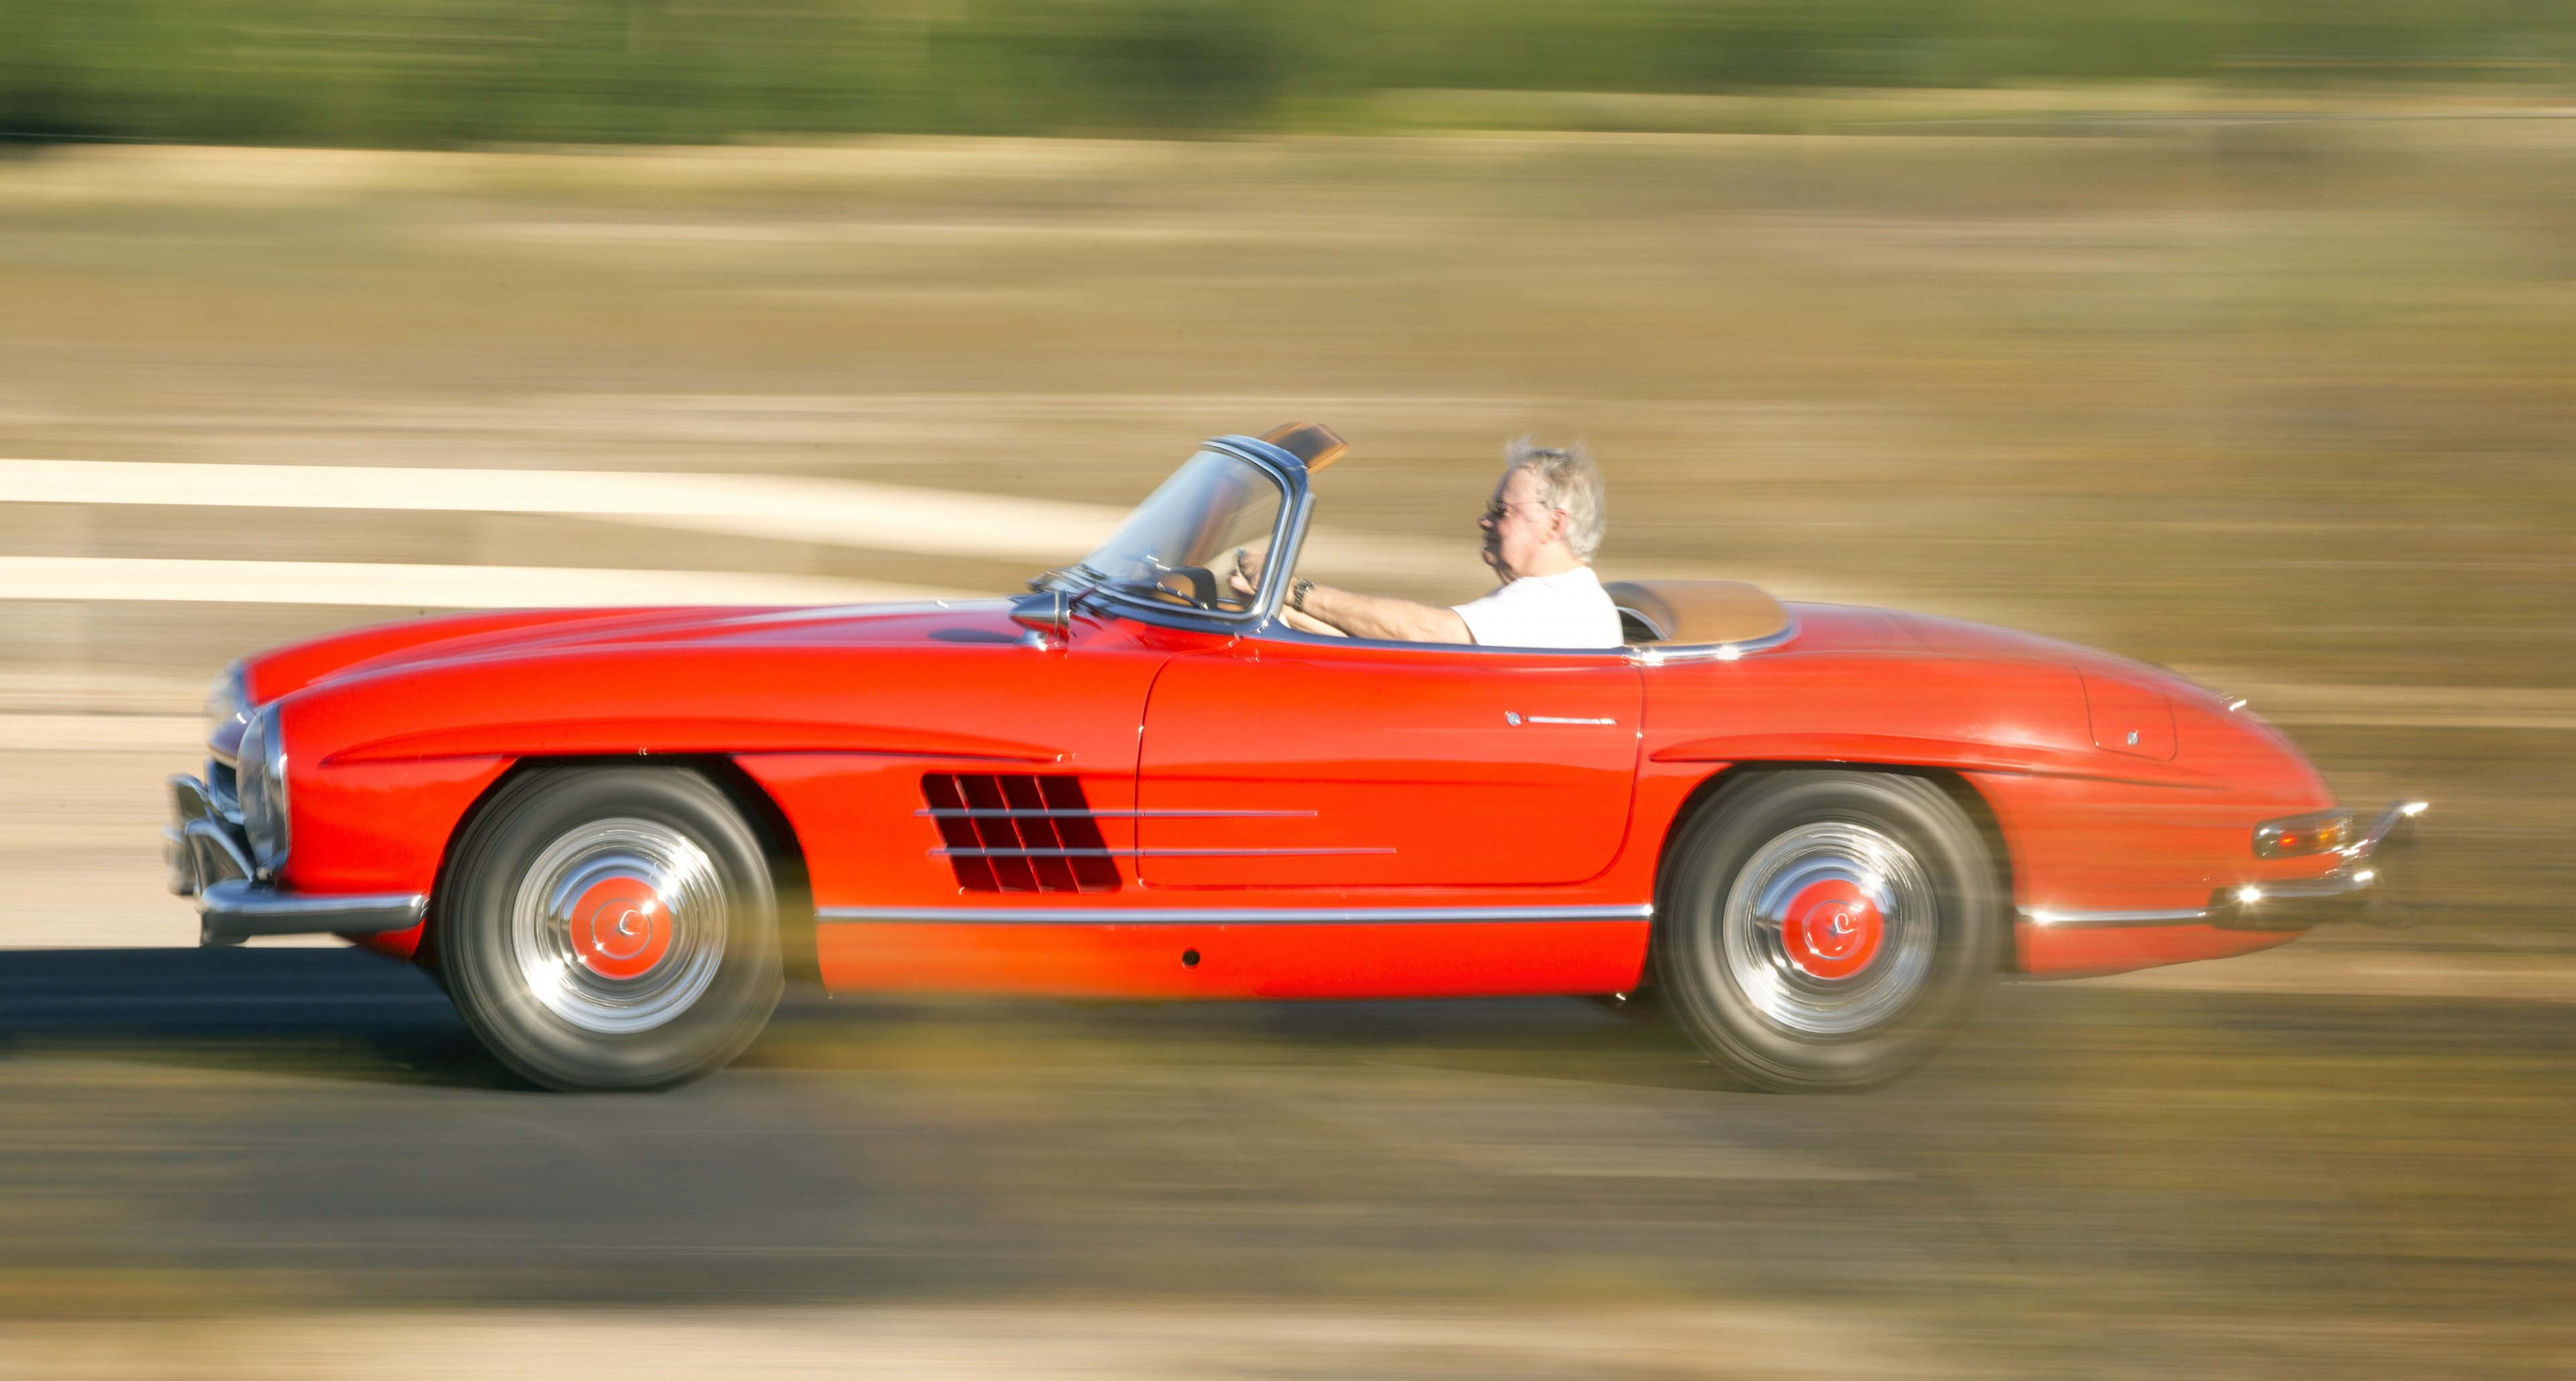 1961 Mercedes-Benz 300SL Roadster with Hardtop sold by Bonhams for $1,237,500